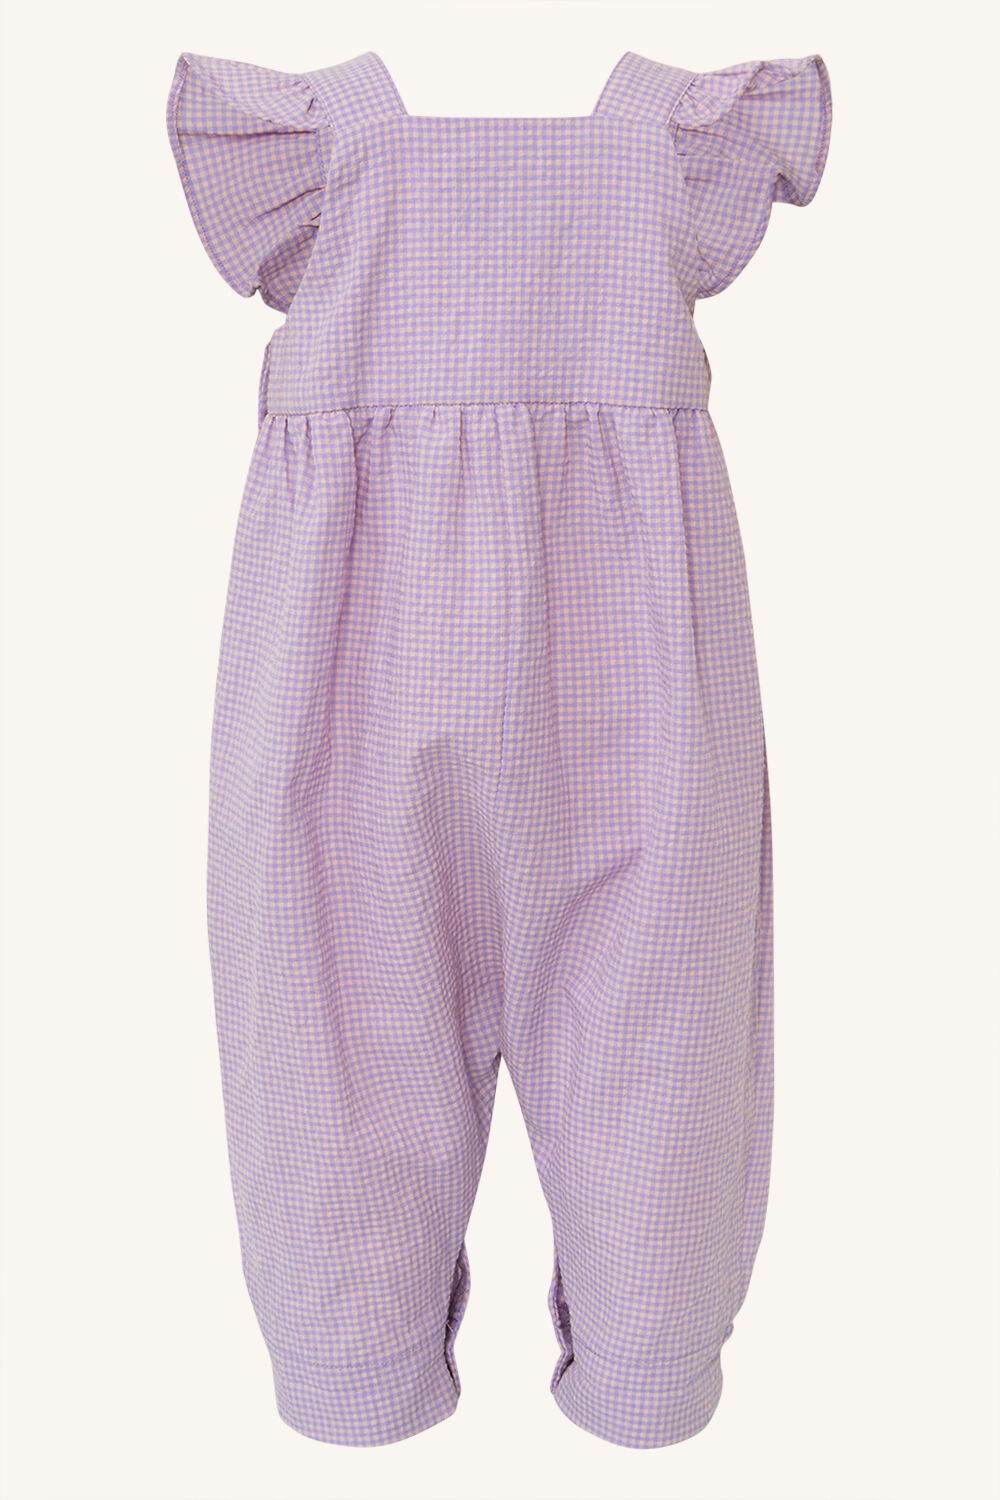 BABY GIRLS GINGHAM OVERALL in colour LILAC SNOW